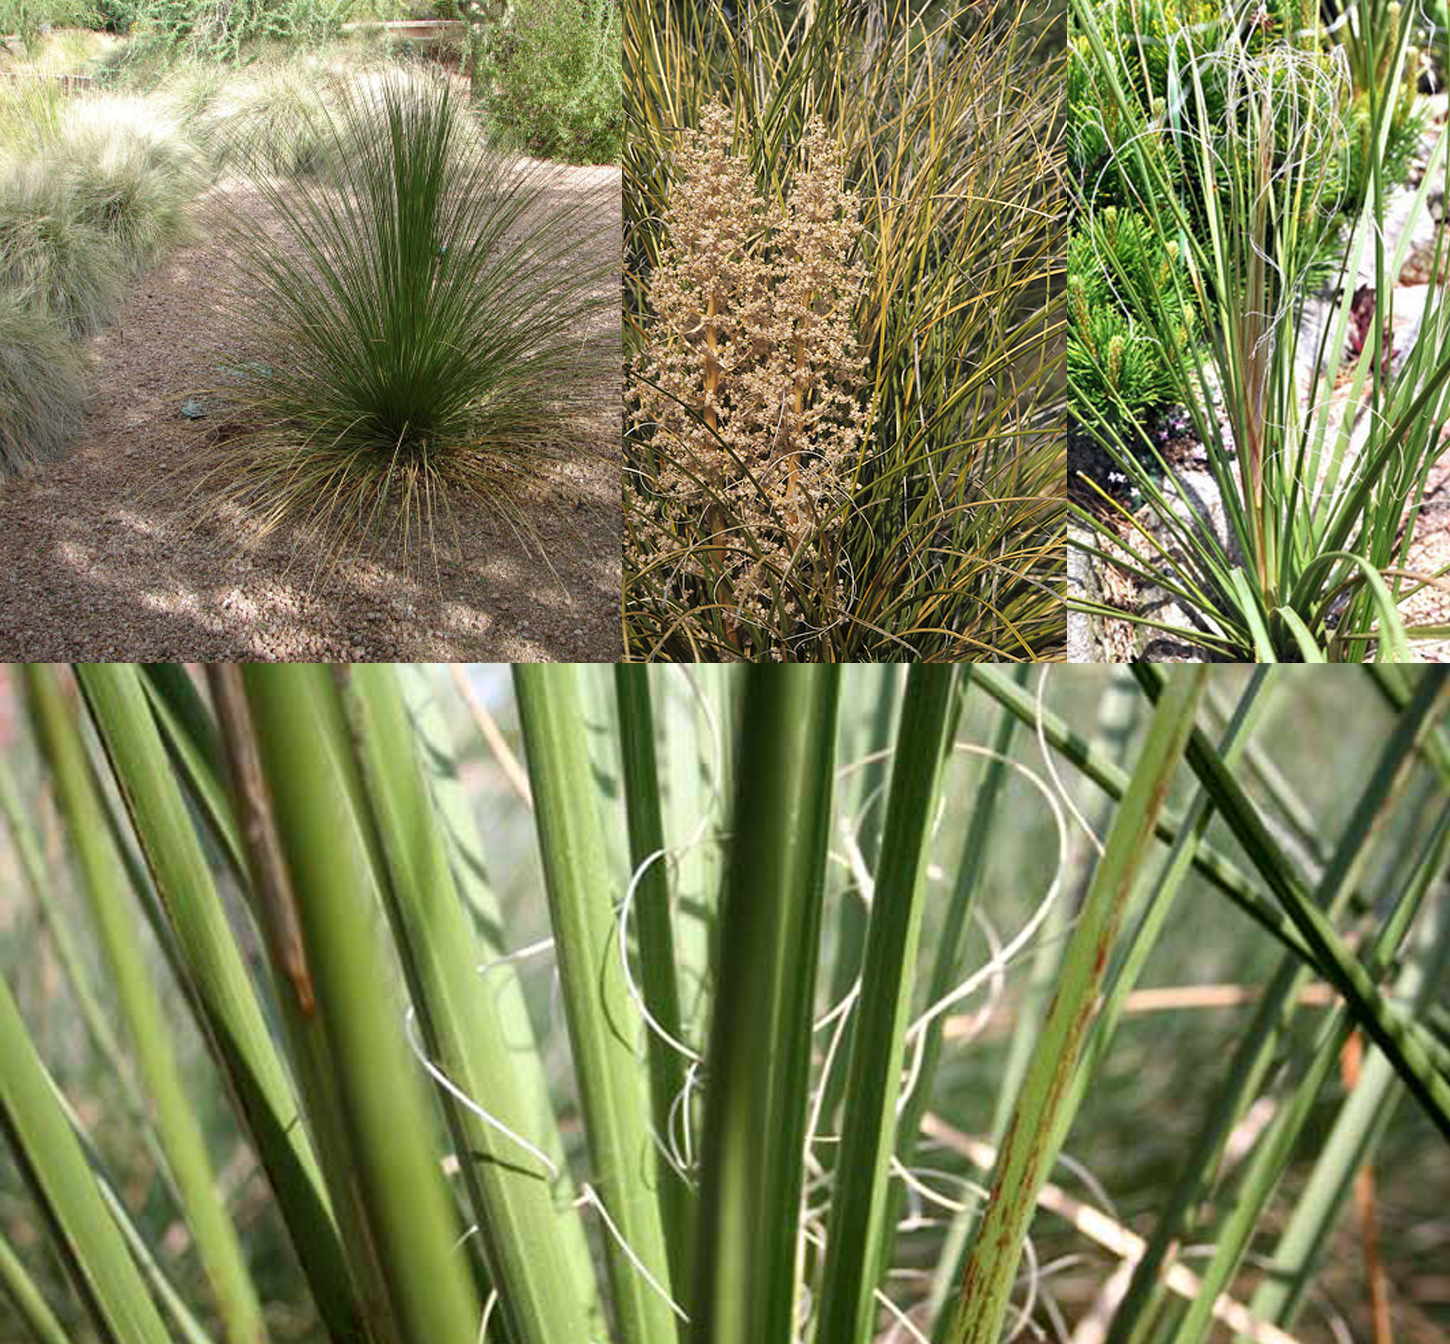 Nolina microcarpa (Big Beargrass or Sacahuista)